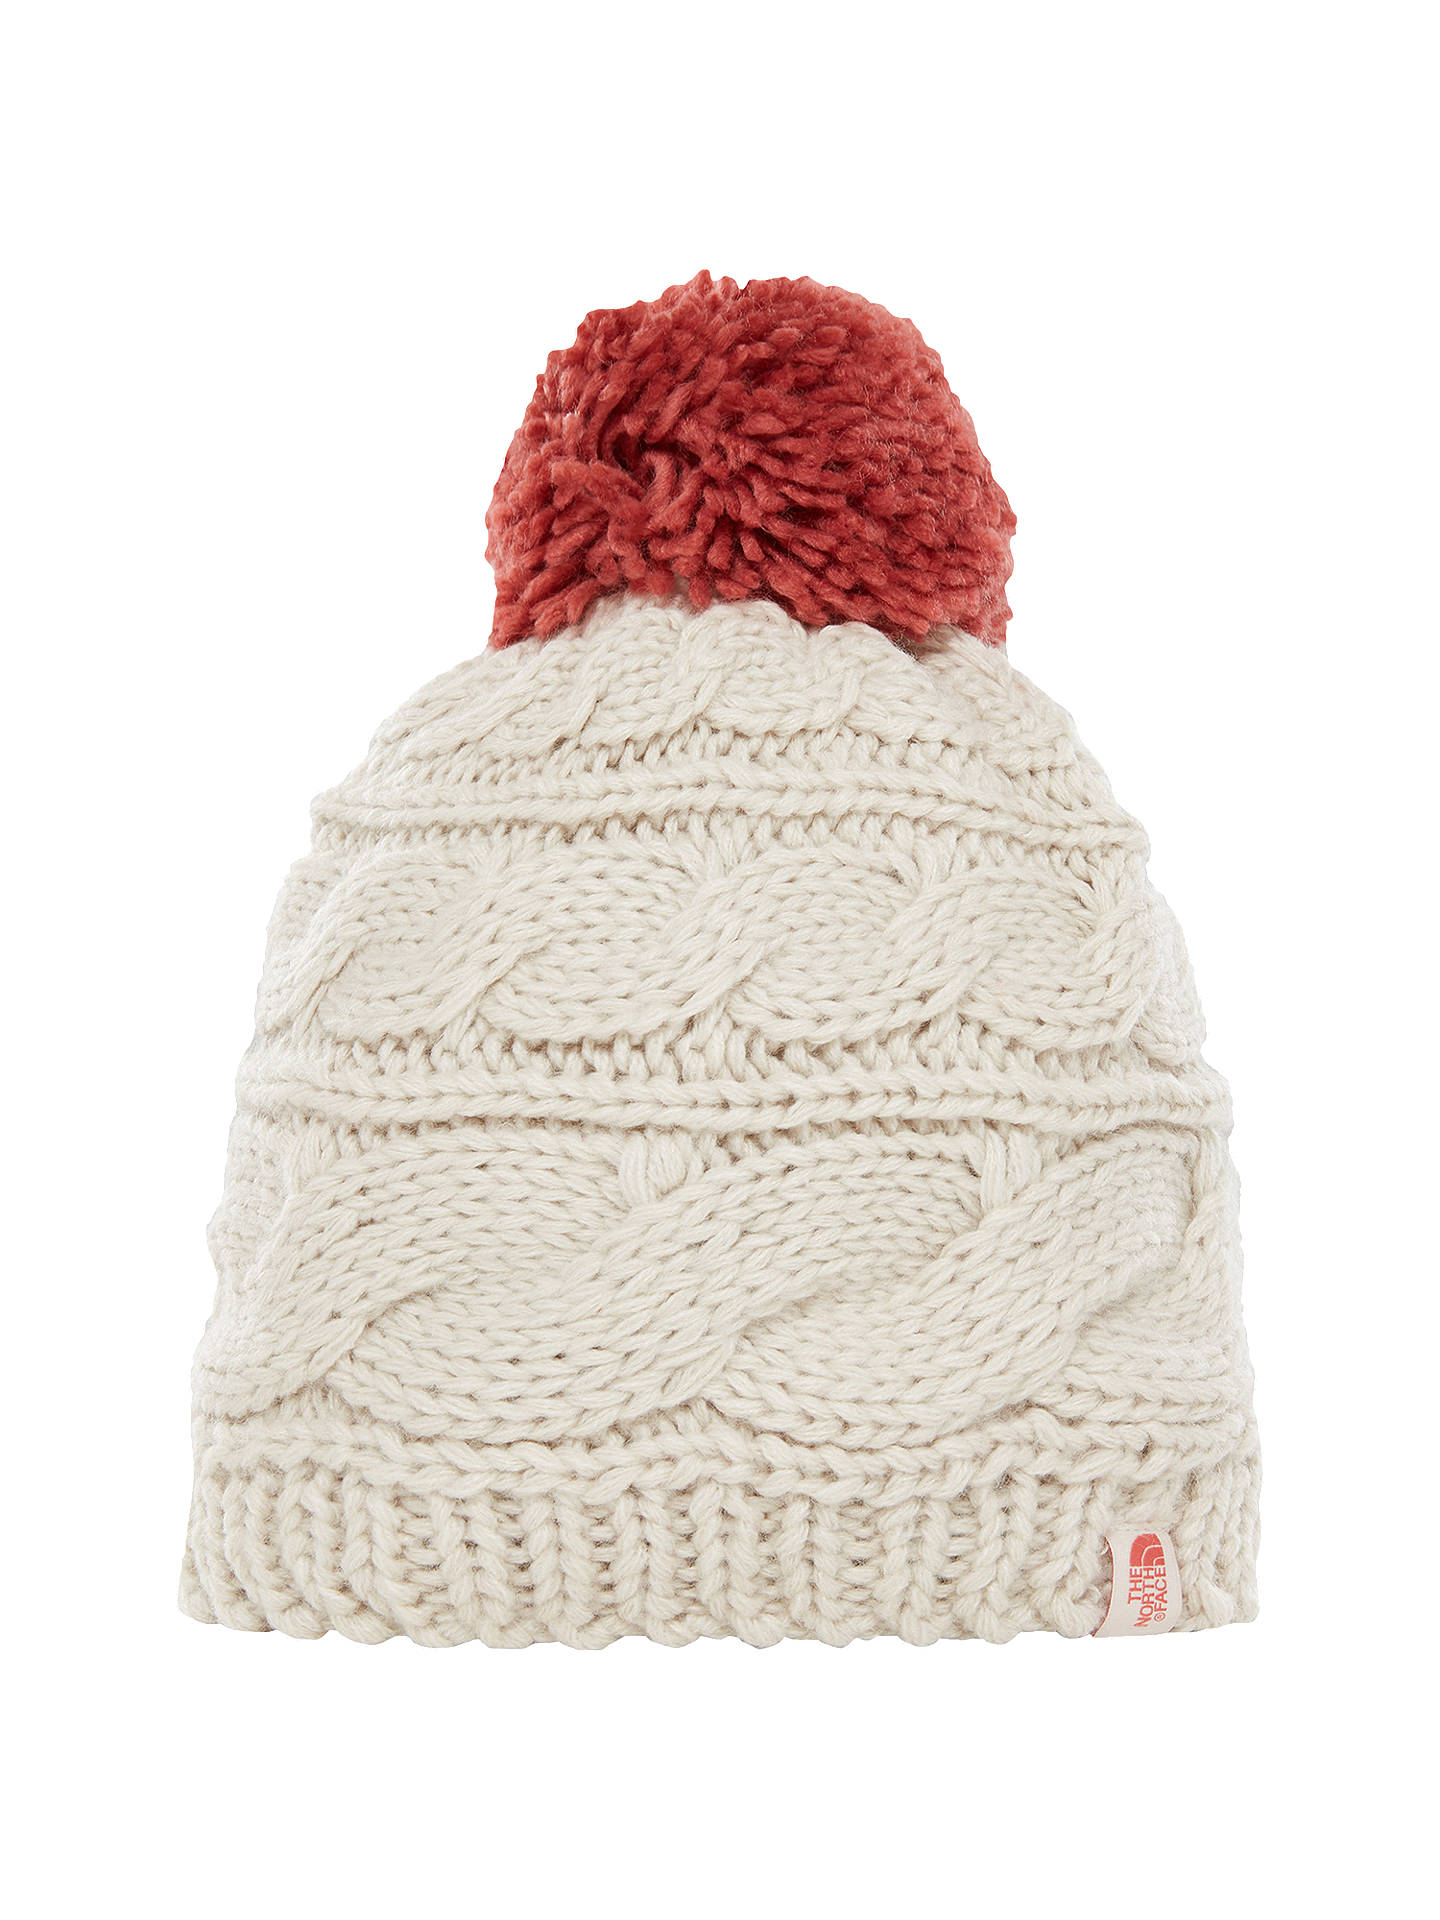 d2ffd38d6649e3 Buy The North Face Triple Cable Beanie Hat, Beige/Red Pom Pom Online at